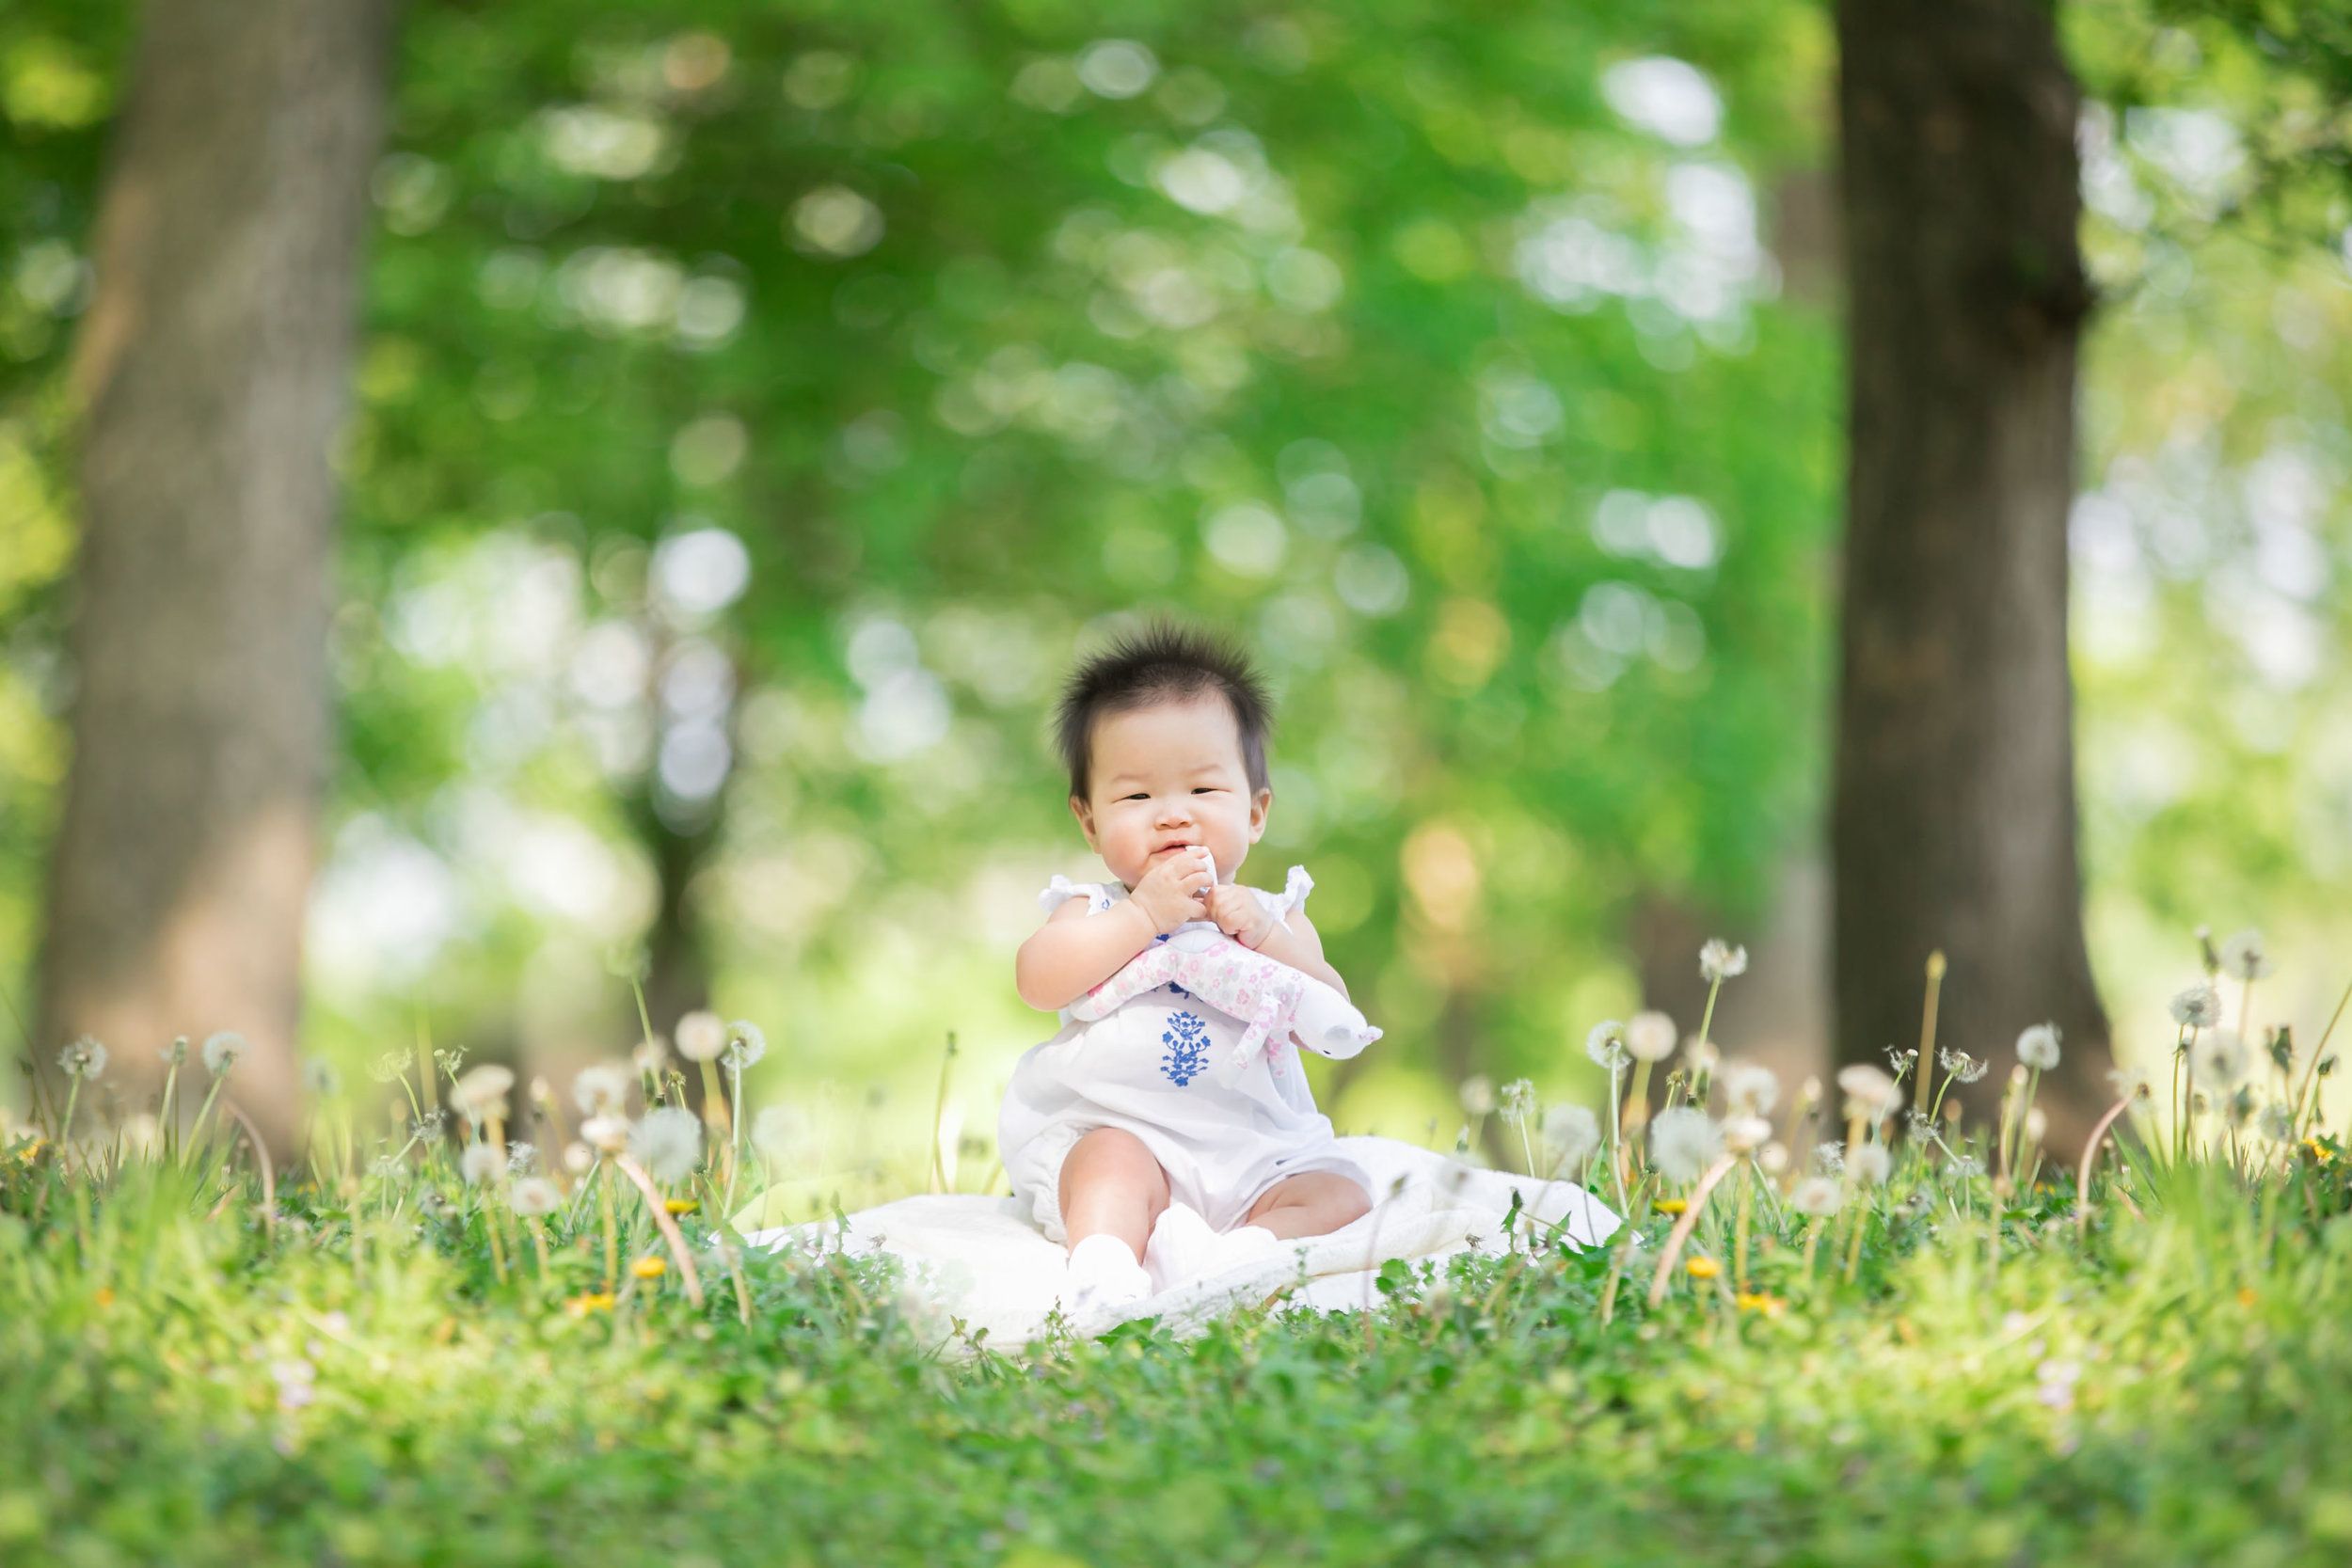 Ashburn VA baby photographer - 9 month old - Natural park - Loudoun County - Yon Chung Photography